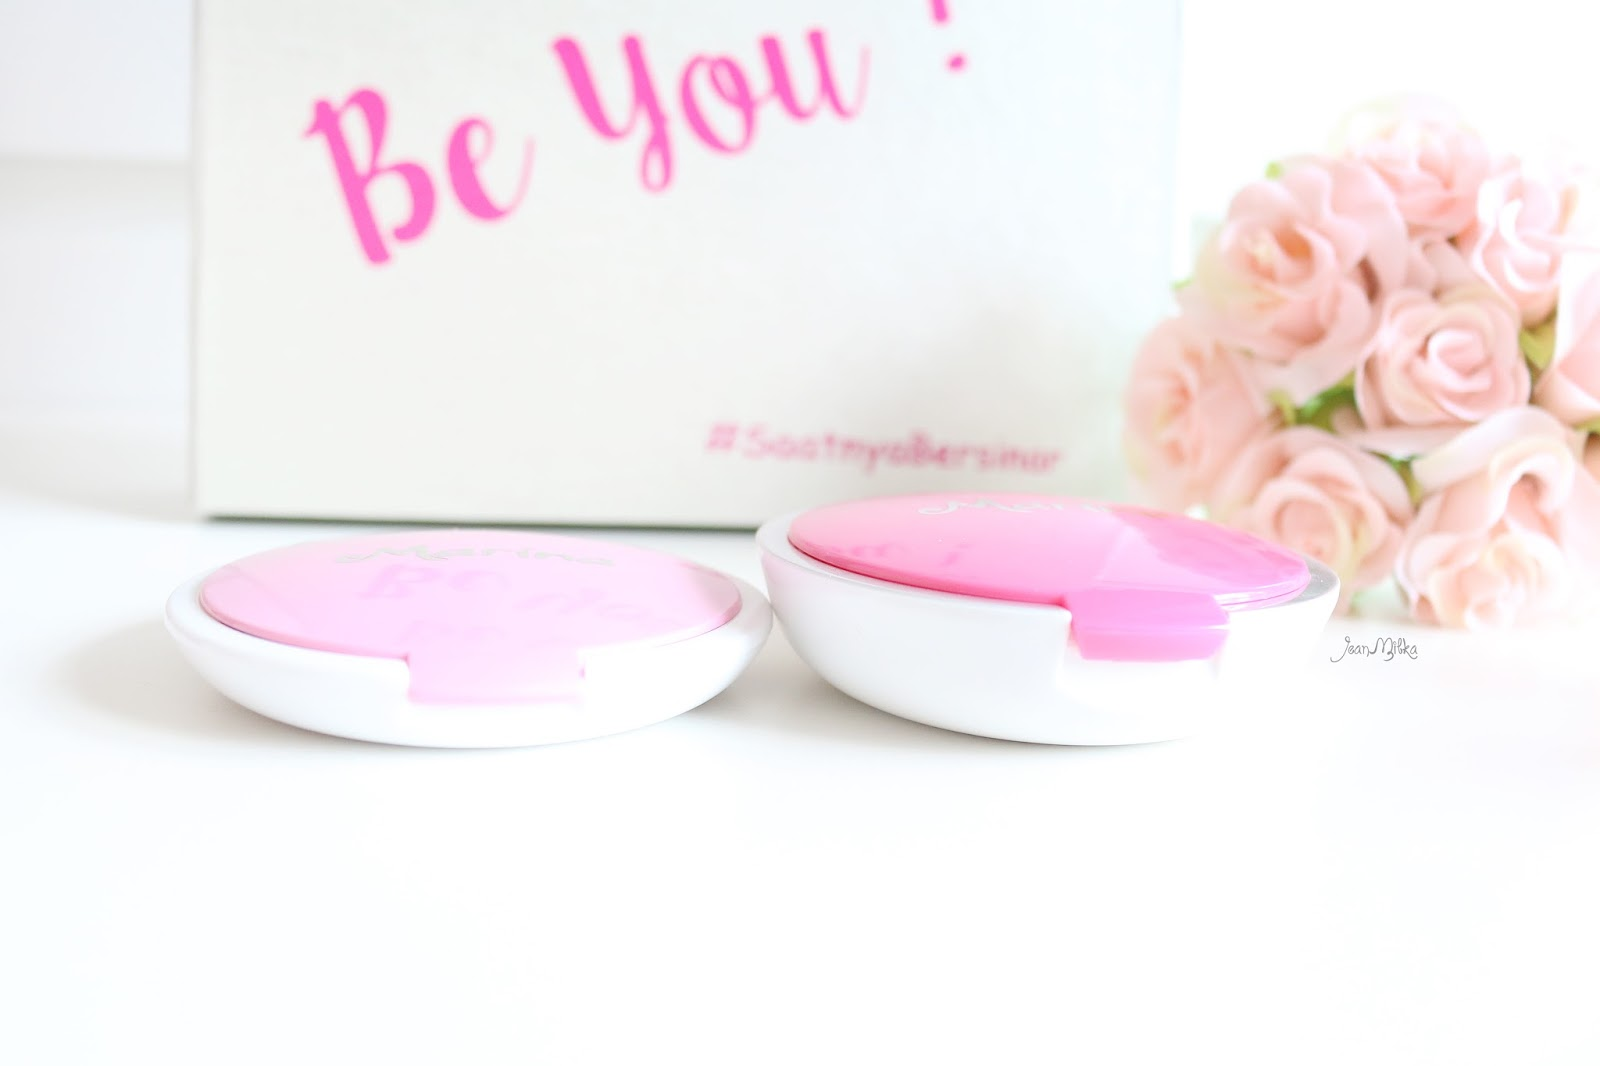 review, marina, marina smooth and glow, bb cream, two way cake, powdery foundation, compact powder, drugstore, makeup, makeup murah, smooth and glow uv, saatnya bersinar, marina compact powder, marina two way cake